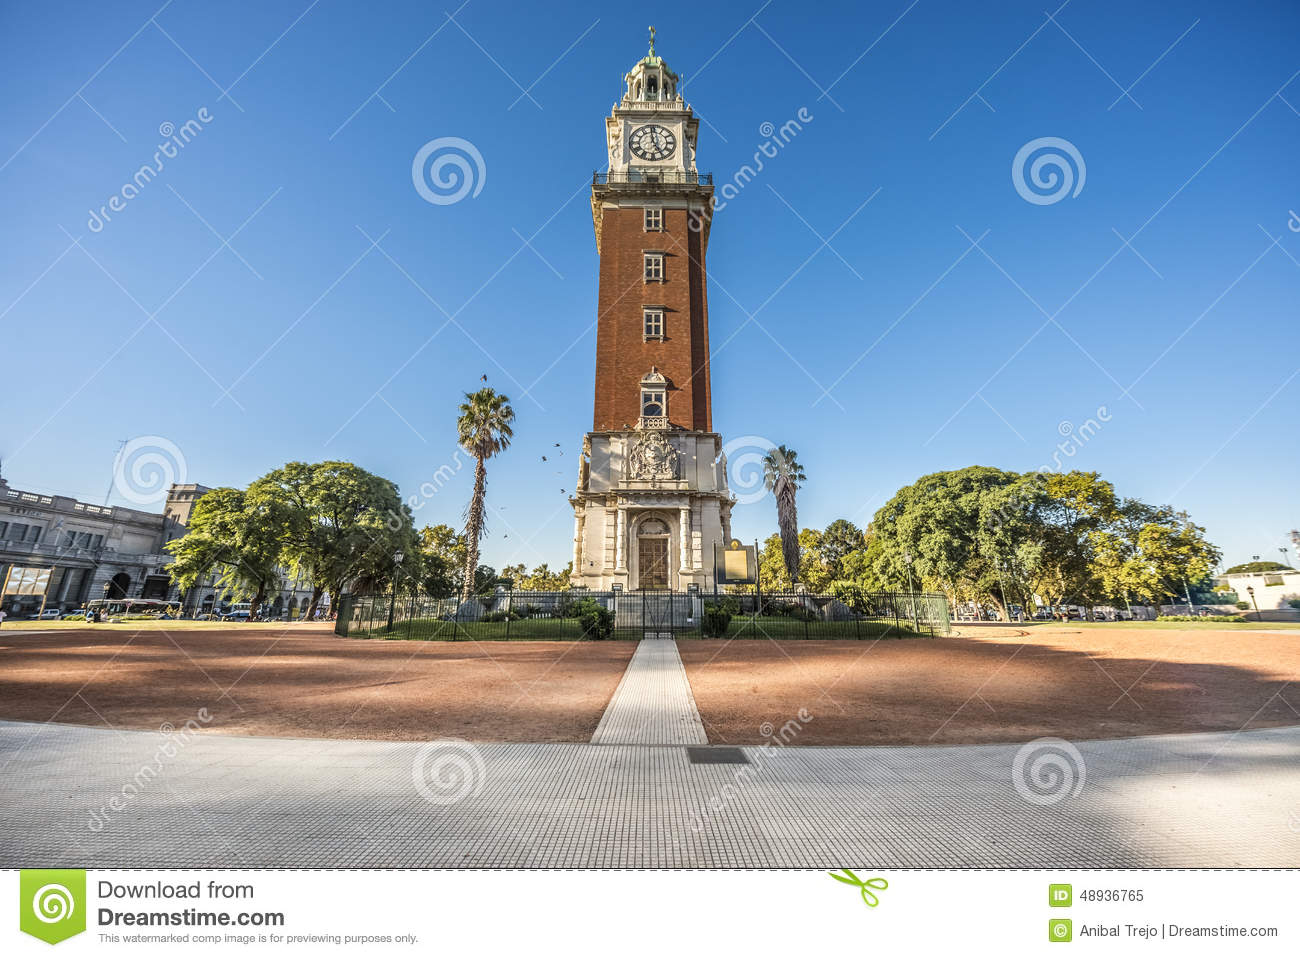 Monumental Tower in Buenos Aires, Argentina